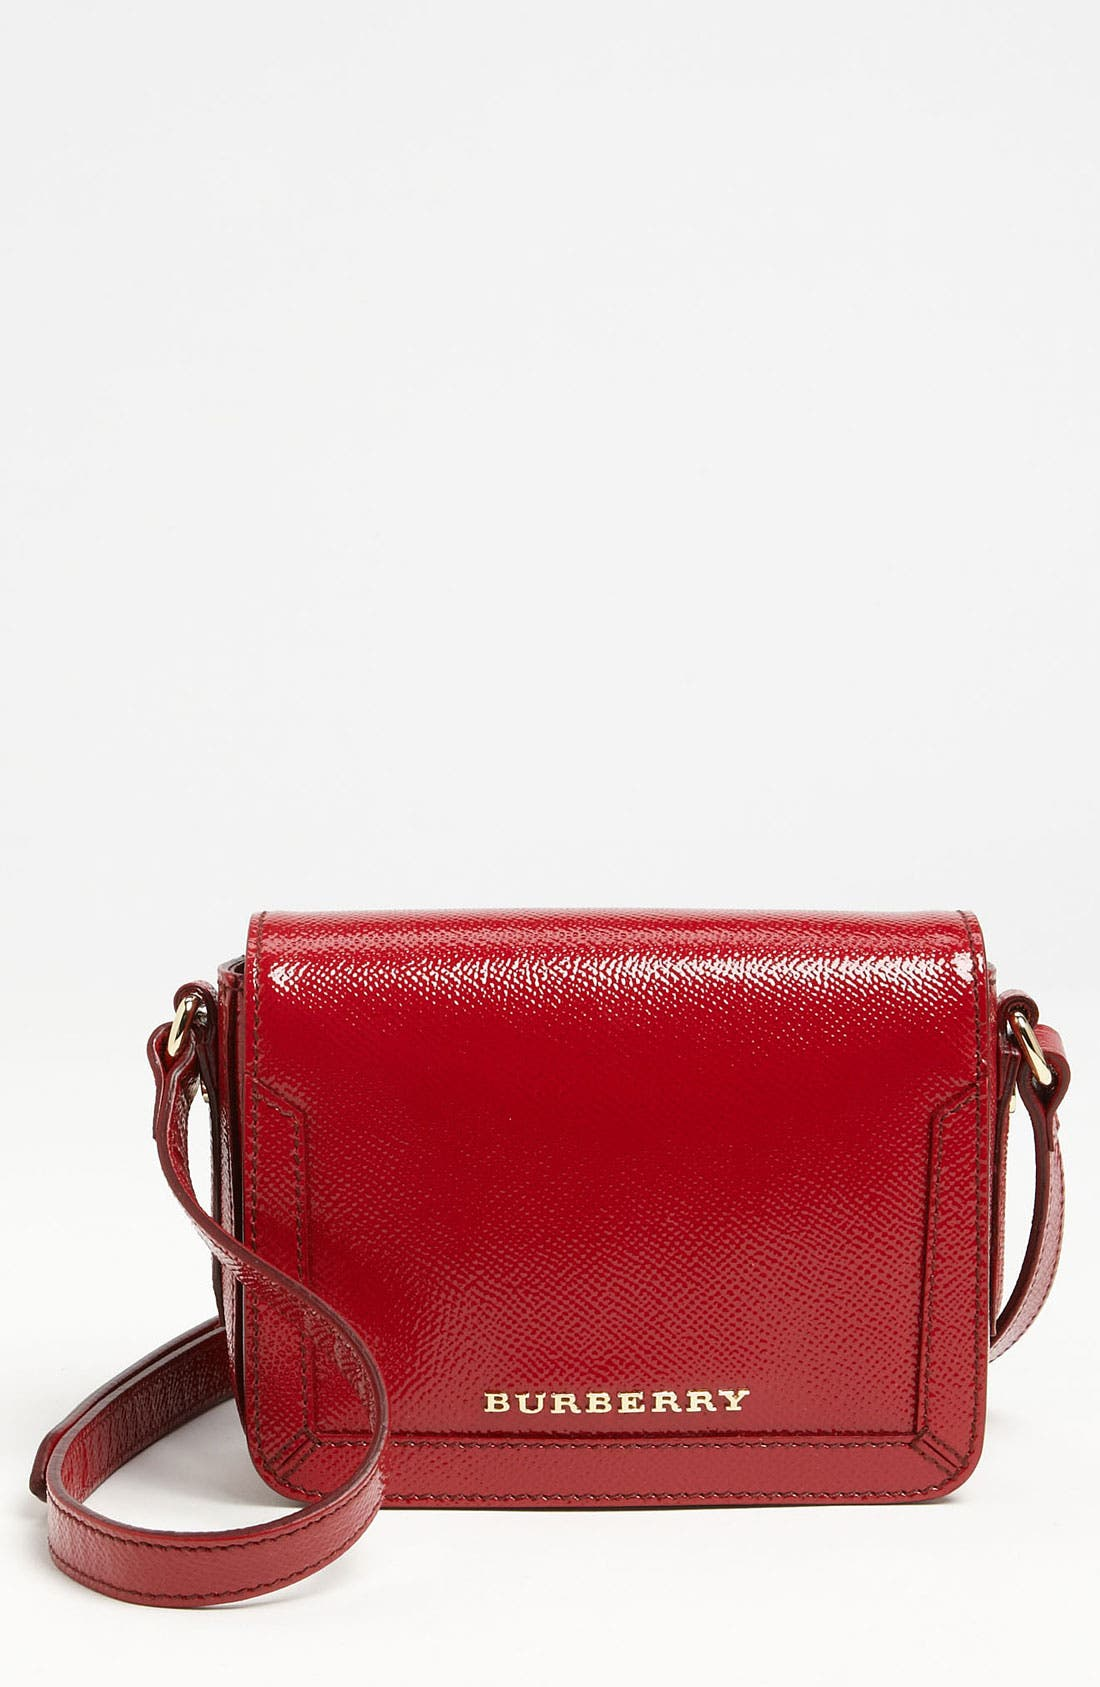 Main Image - Burberry 'Ladies London' Leather Crossbody Bag